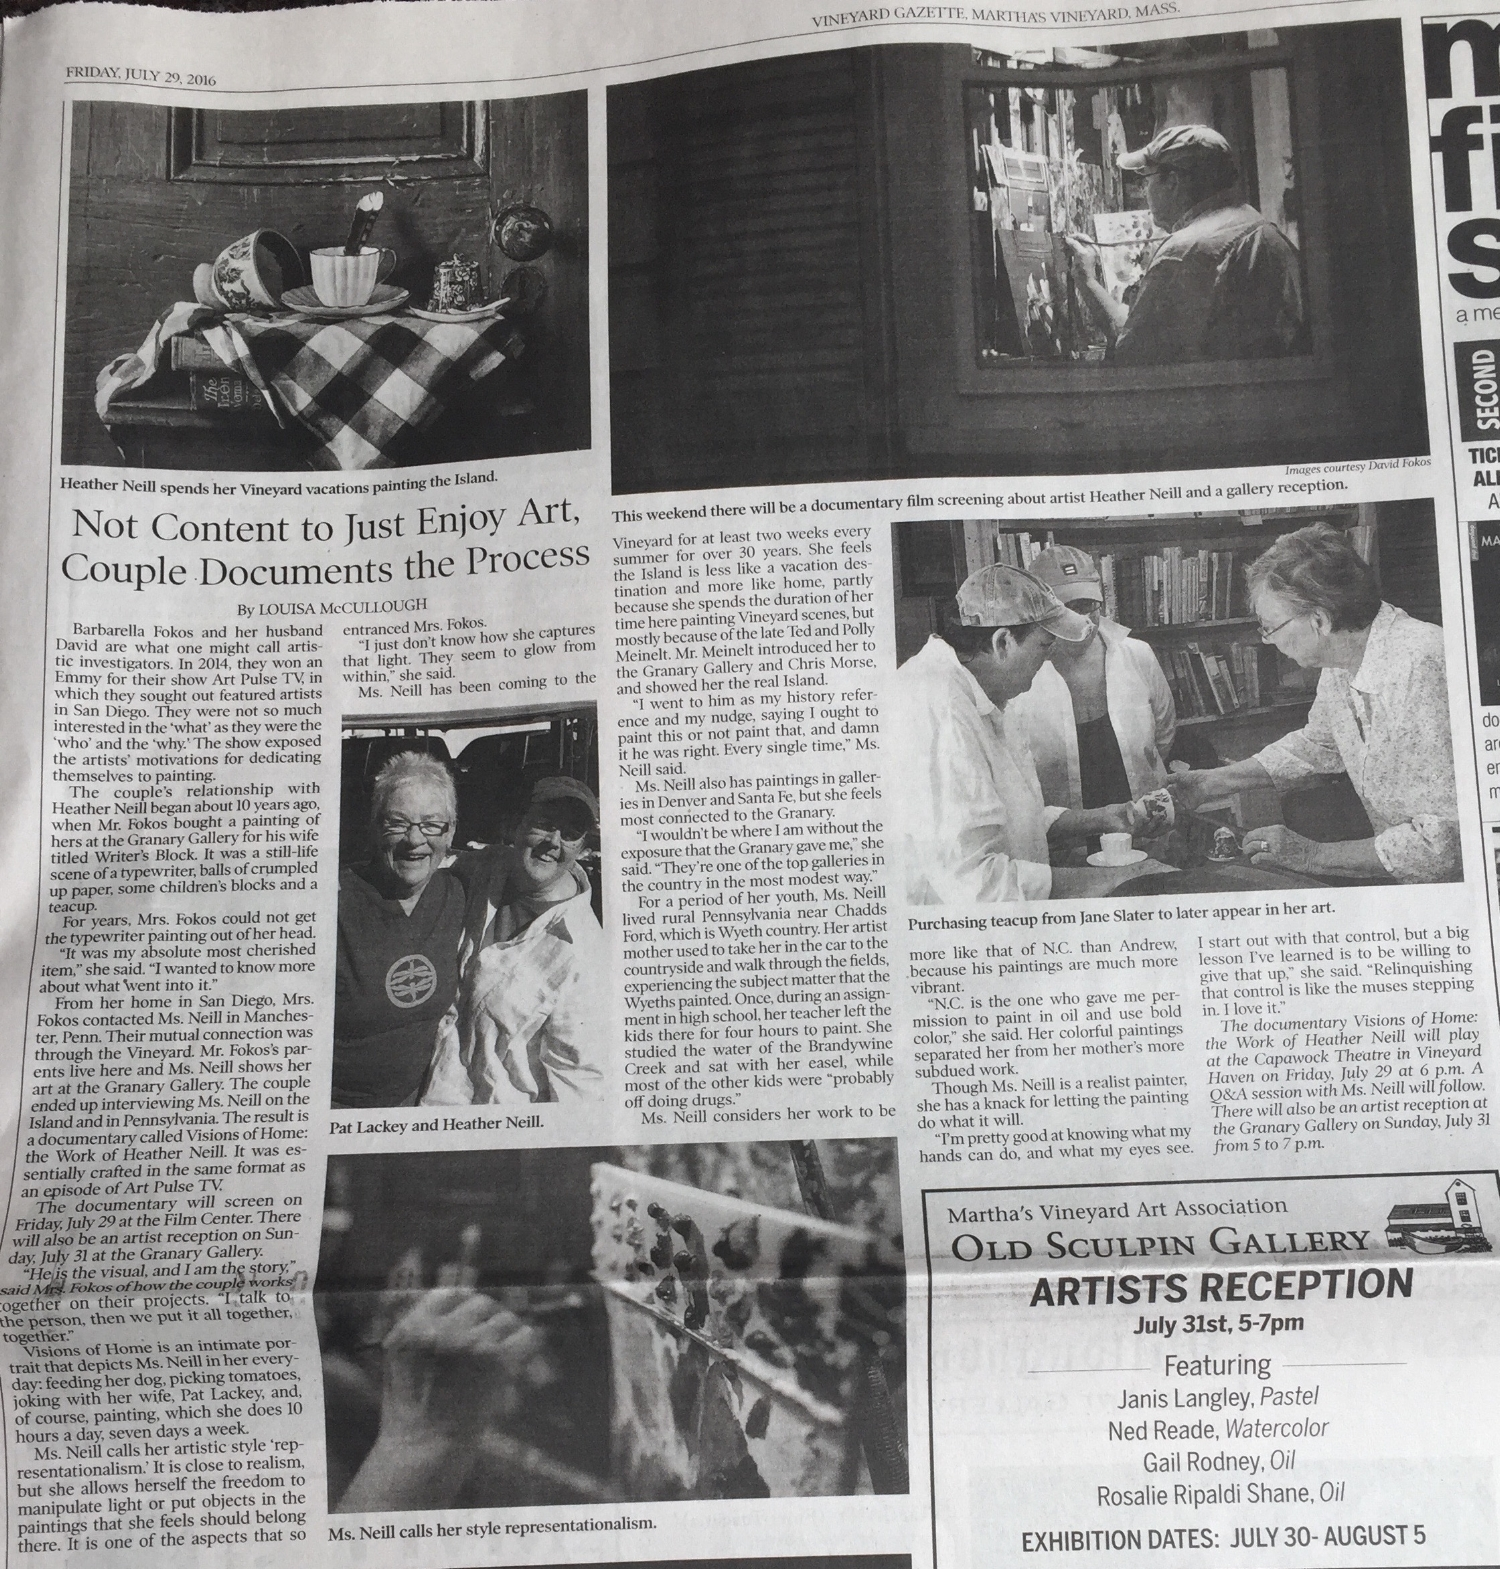 A full page write-up about the making of this film in the Vineyard Gazette.